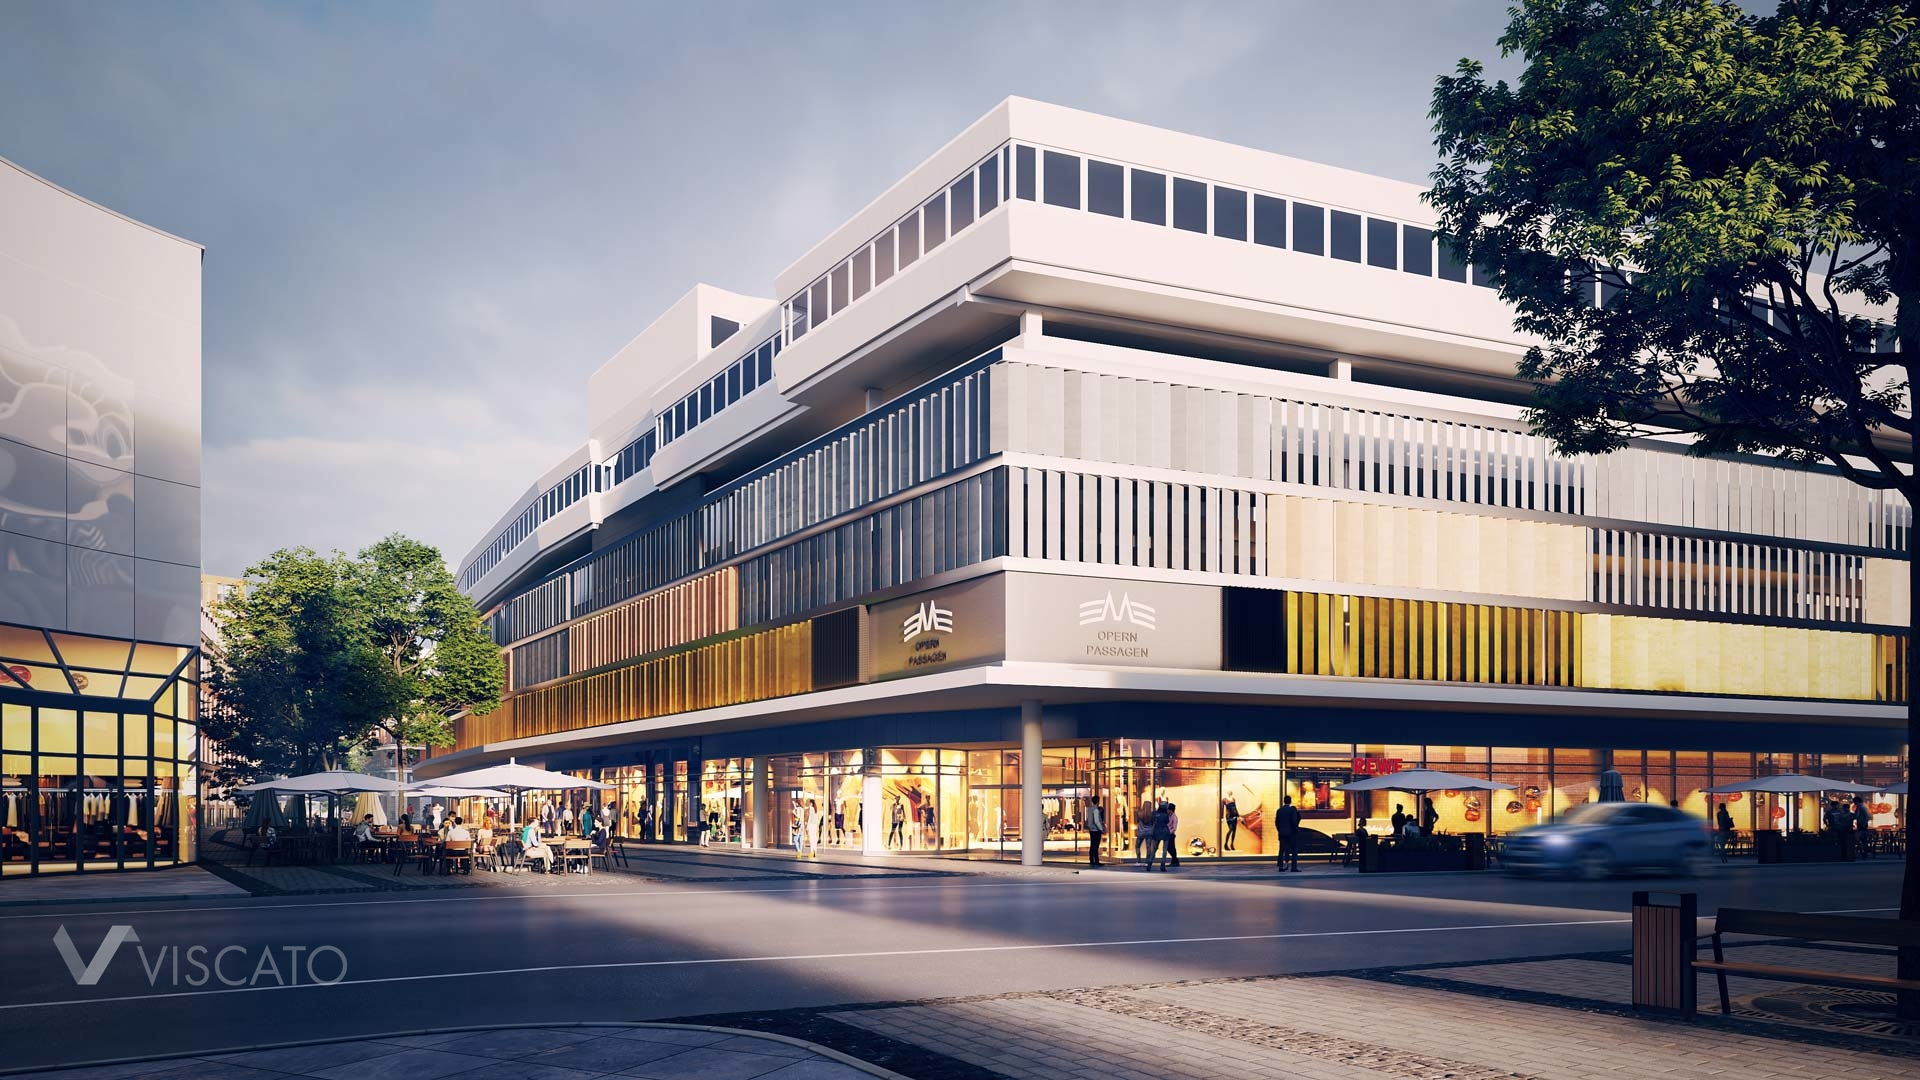 3D exterior visualization of a shopping centre, Viscato